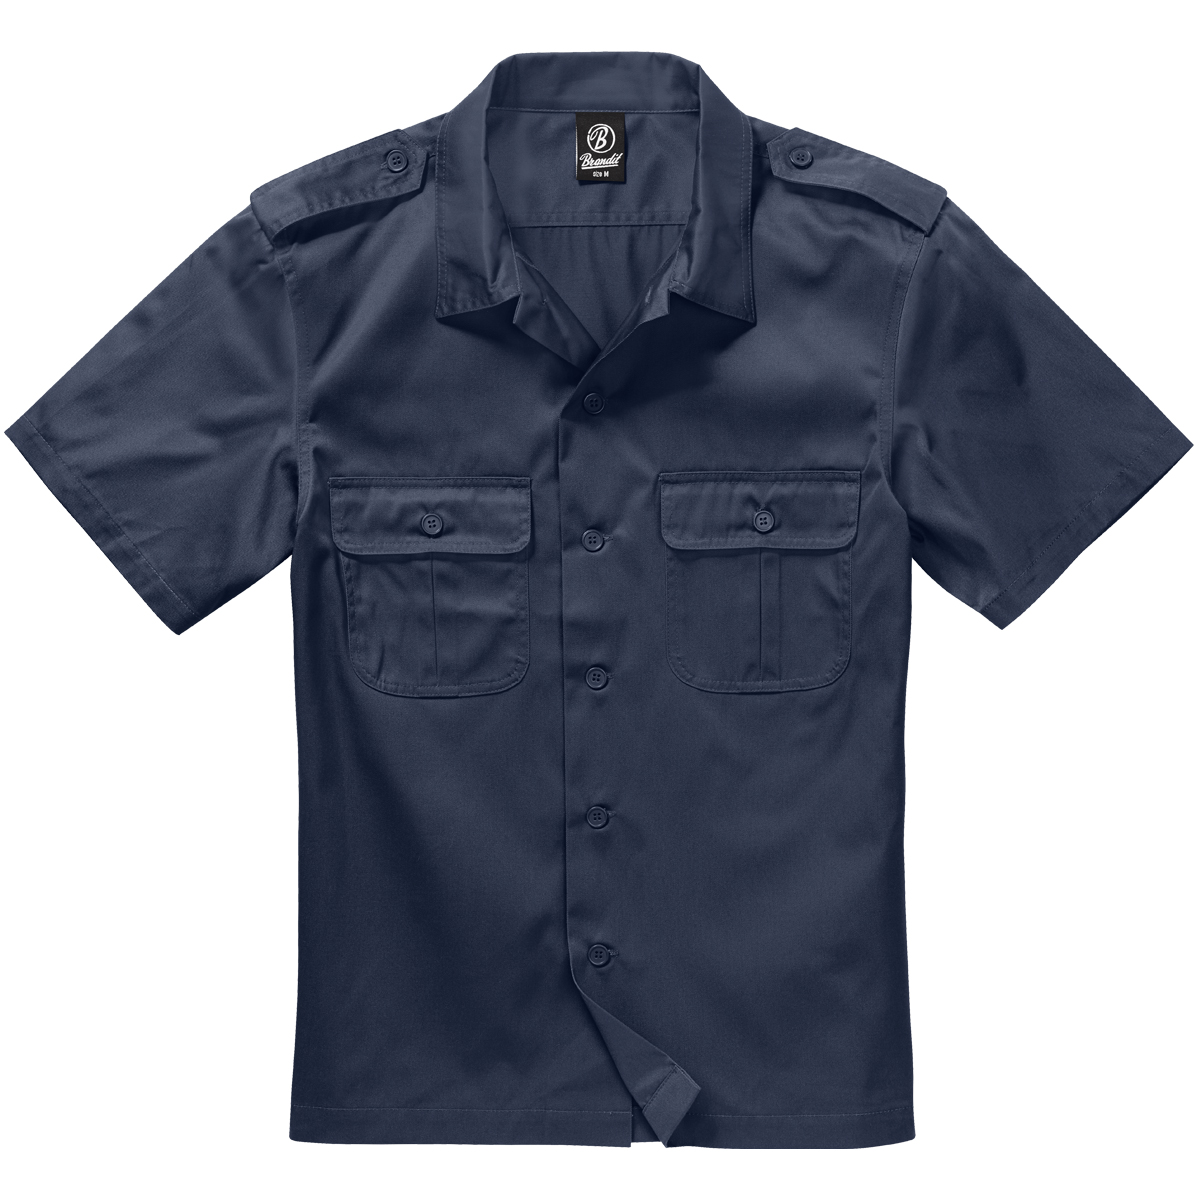 Brandit Us Shirt Short Sleeve Navy Tactical Military 1st